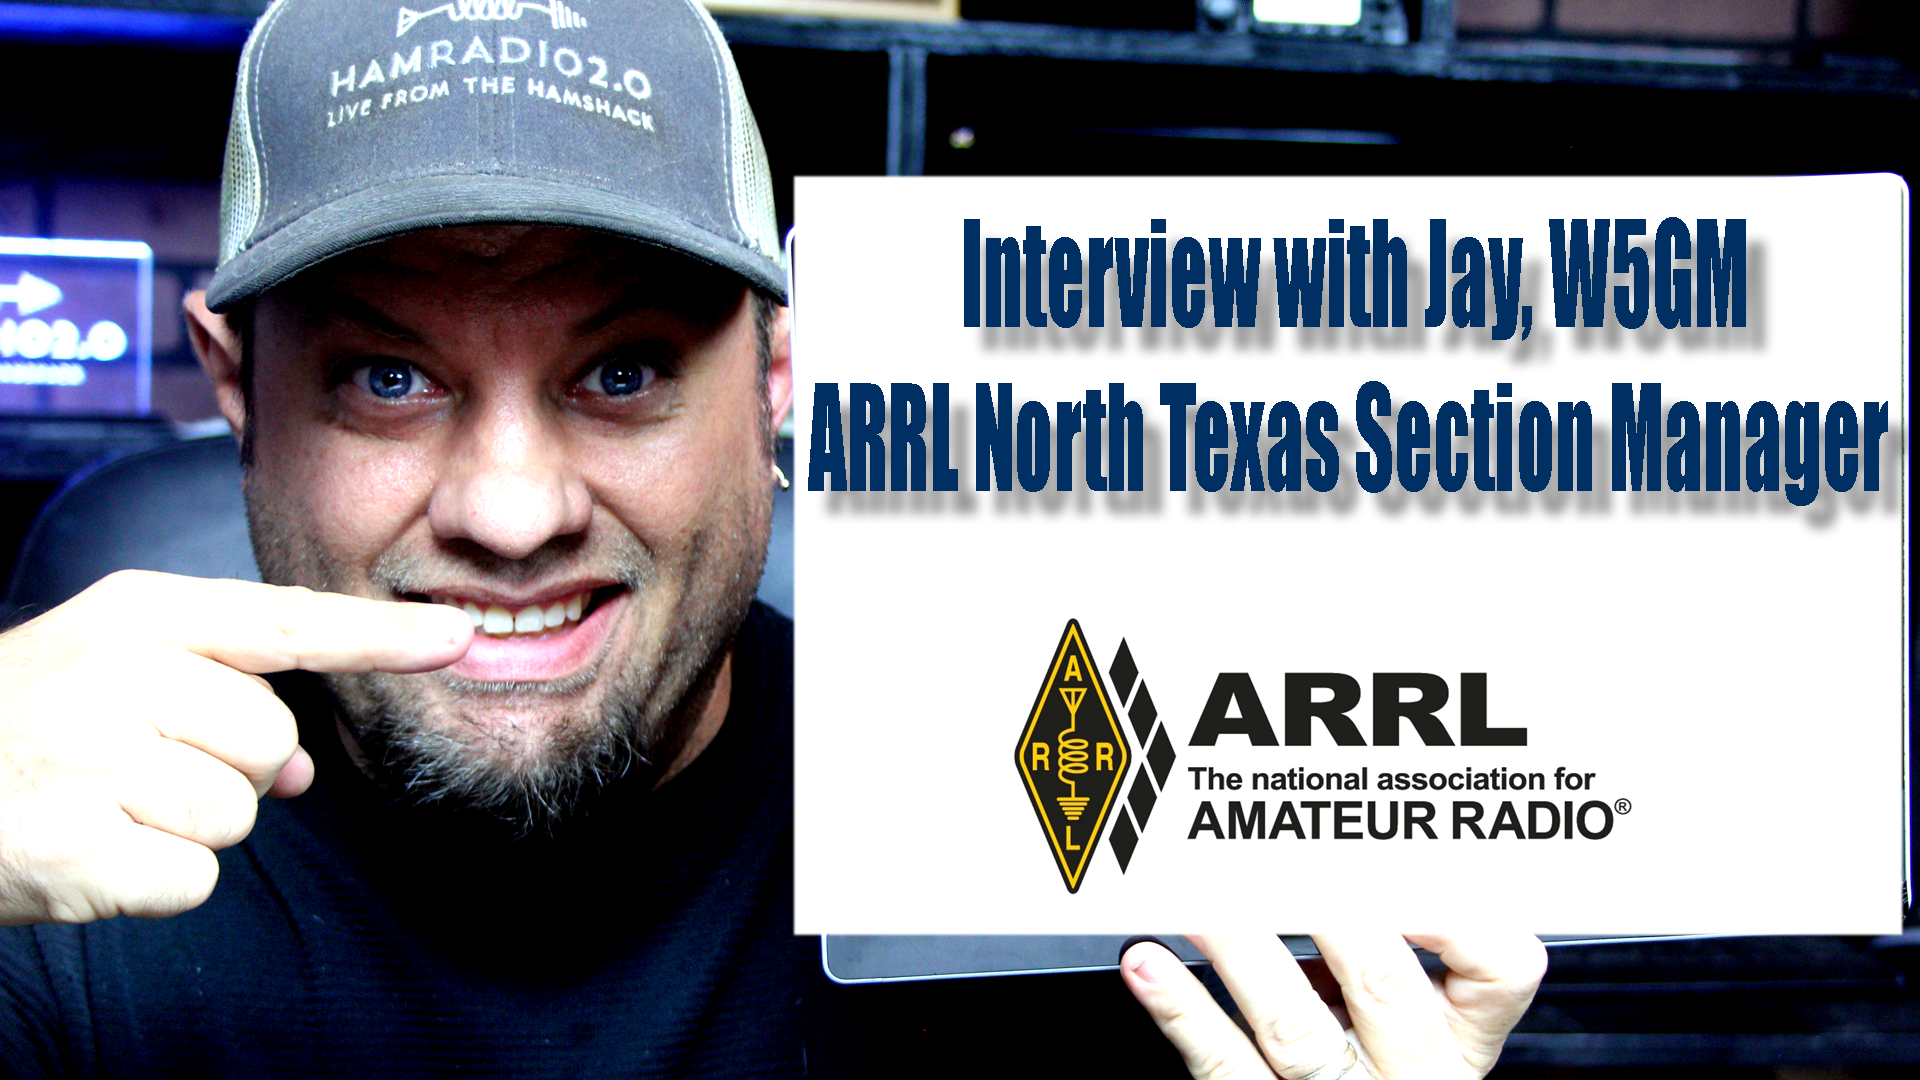 Episode 174: Interview with Jay, W5GM, the ARRL NTX Section Manager